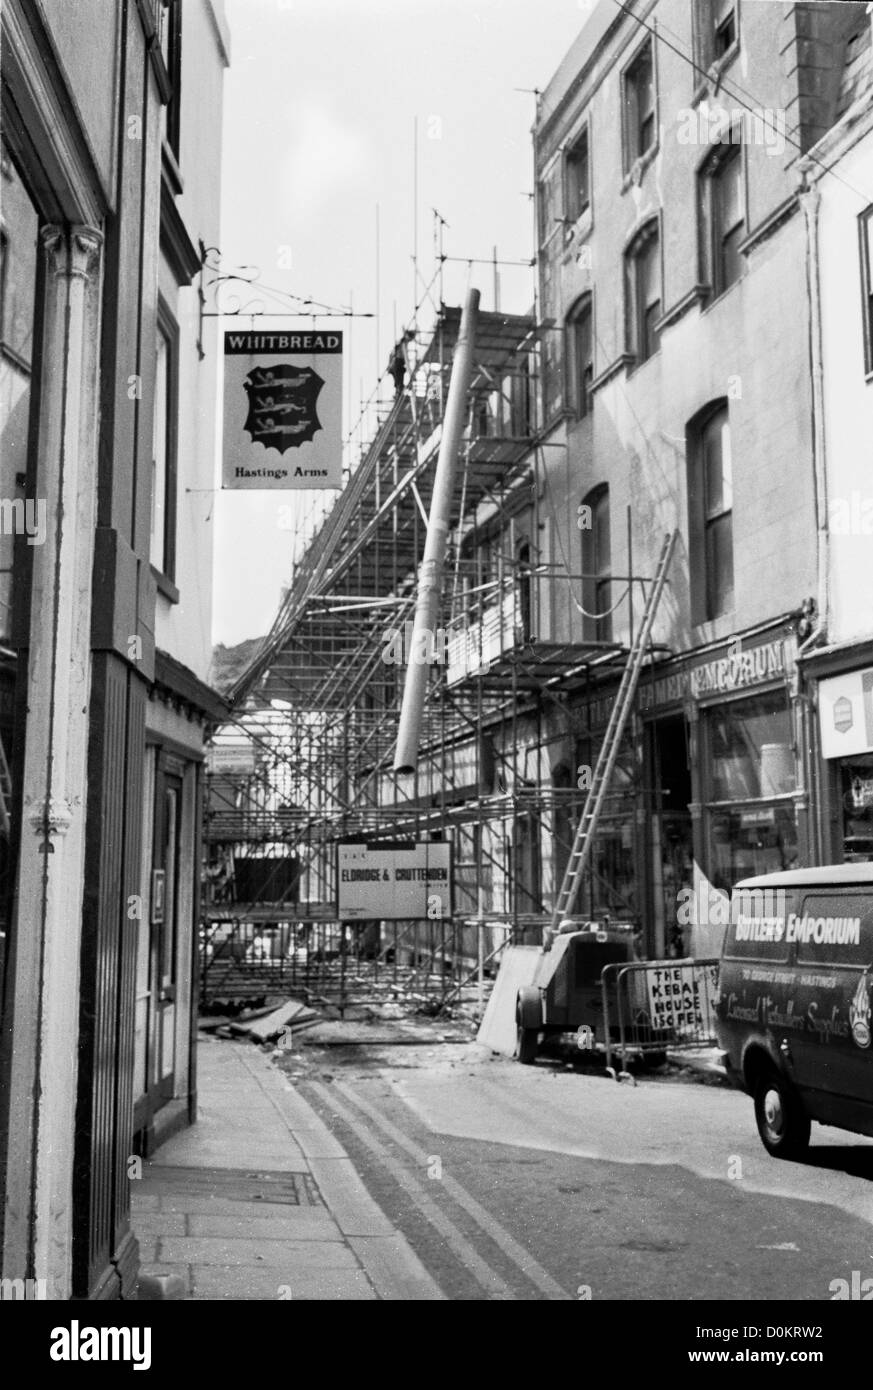 George street in Hastings Old Town taken in 1976 after T W barnes warehouse burnt down. - Stock Image